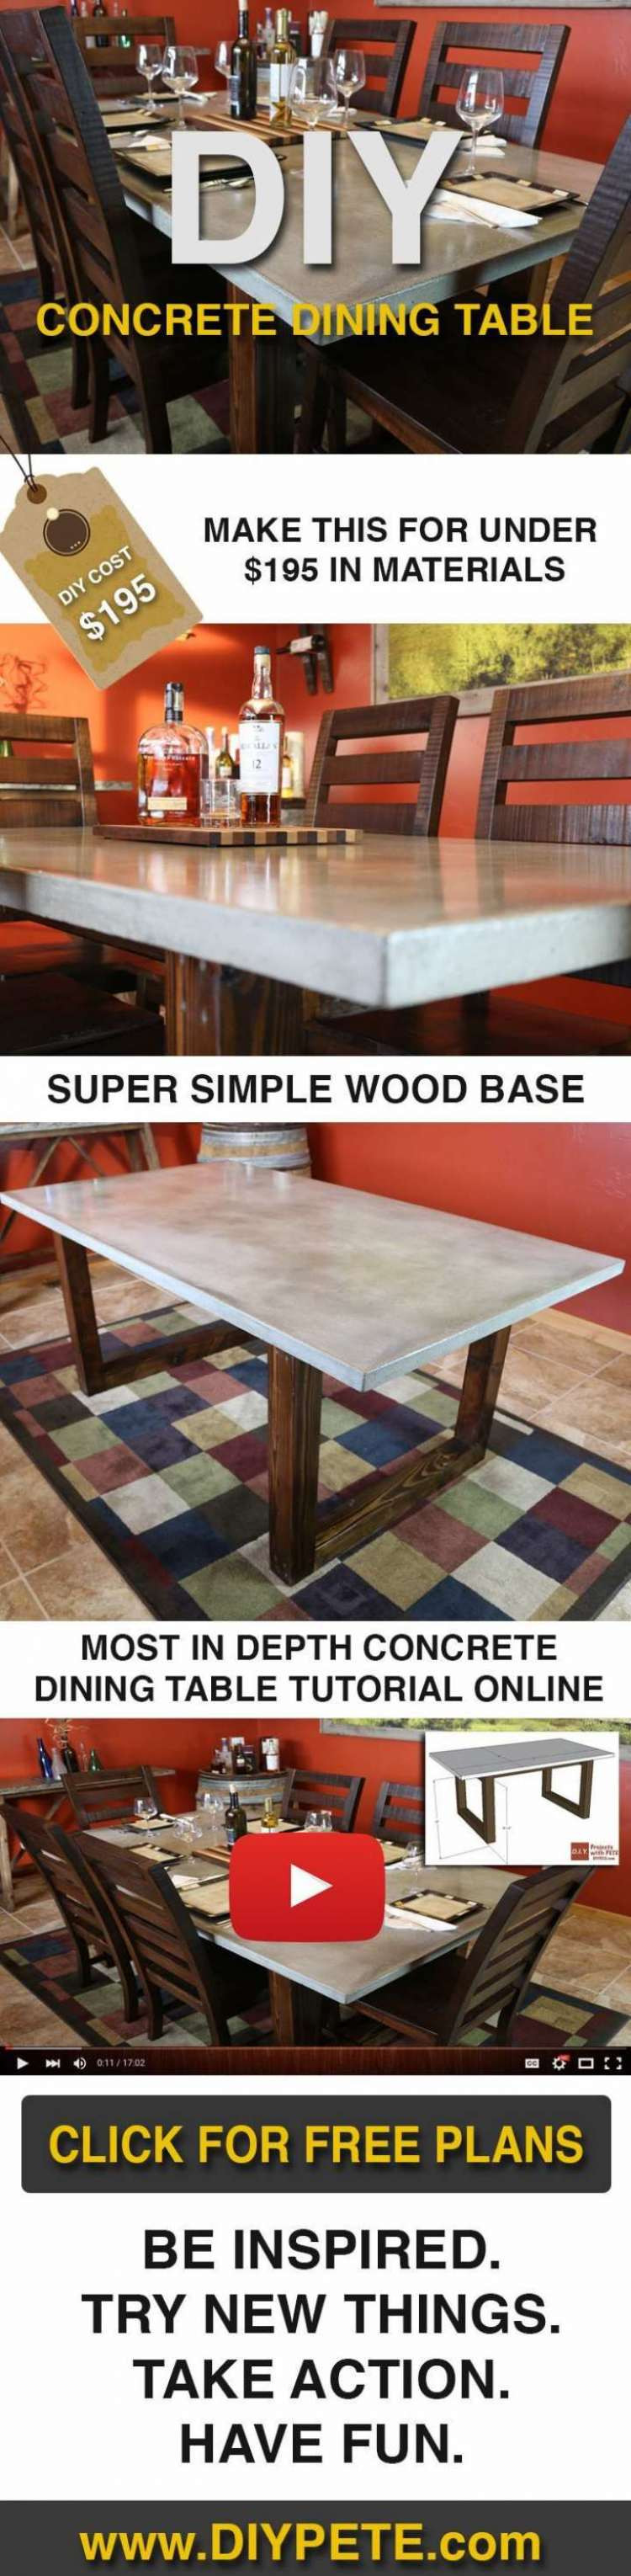 diy hardwood floor table of outdoor electrical outlet beautiful 33 new plug in outdoor light for diy sofa table with outlet awesome outdoor table and chairs dubai petite outdoor sofa 0d patio